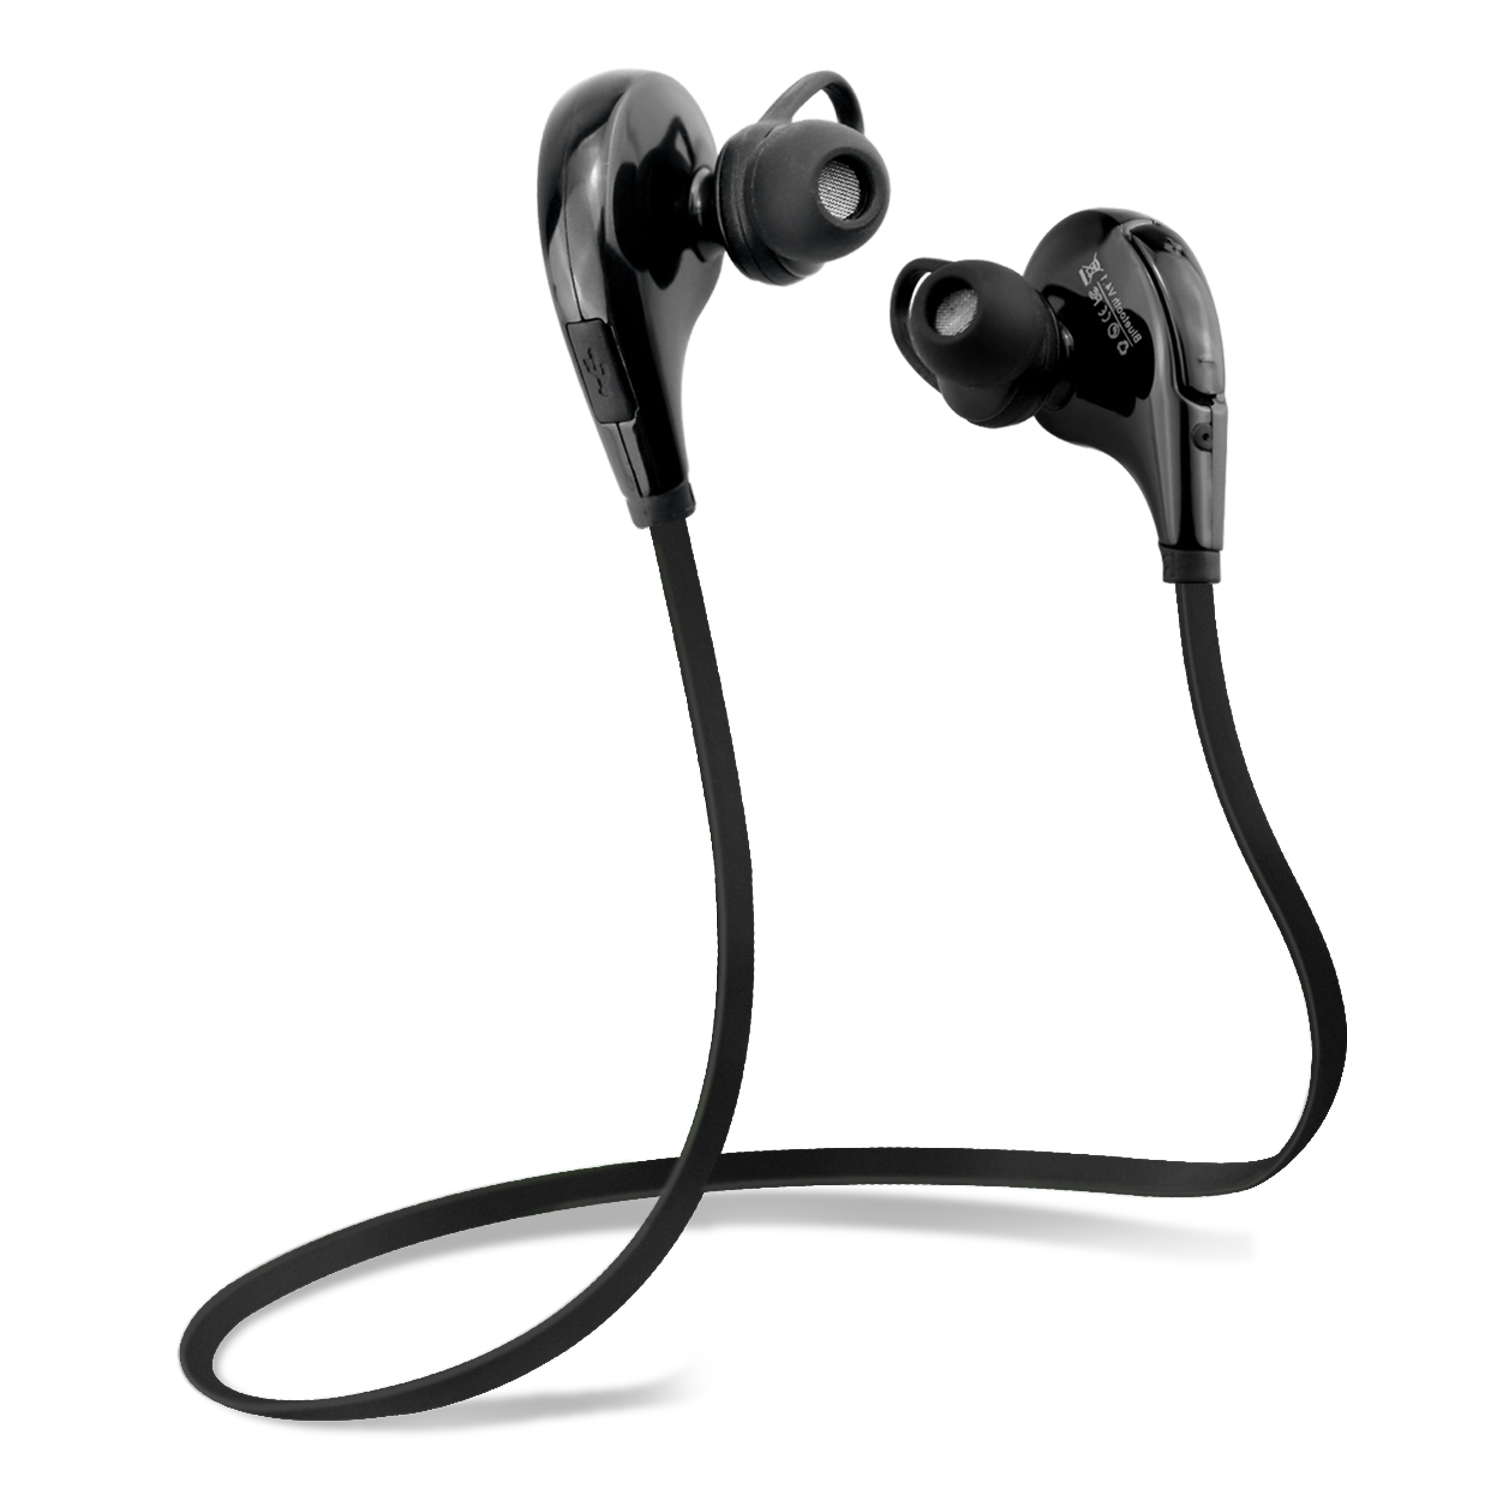 Kinlan BE1002 Bluetooth 4.1 Wireless Sports Headphones Noise Cancelling Sweatproof In-ear Stereo Earbuds Earphones with Microphone for iPhone iPad iPod and Android Devices